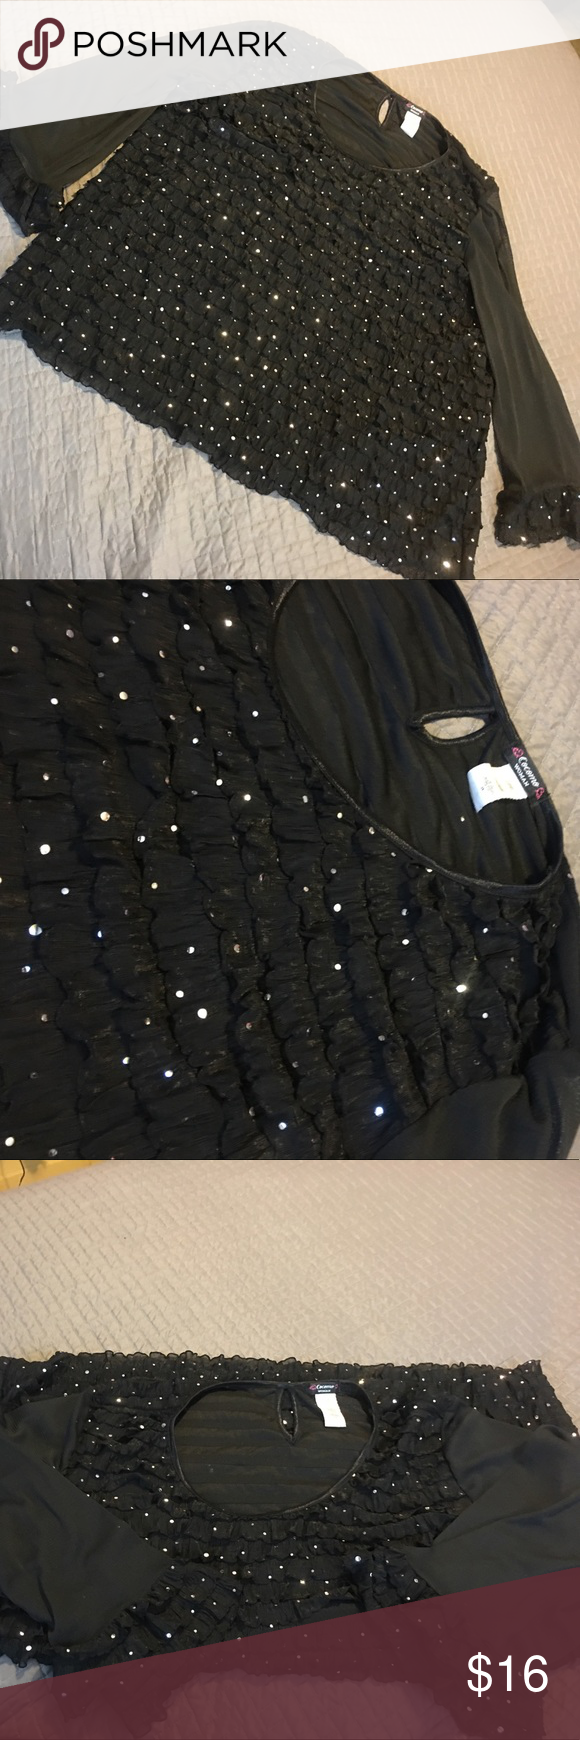 Black Sparkly Party Shirt Black Sparkly Party Shirt. Size 3x So very  cute and fun for that night out or office party. Pair it with a black or Silver skirt and your ready❤ Cocomo Woman Tops Blouses